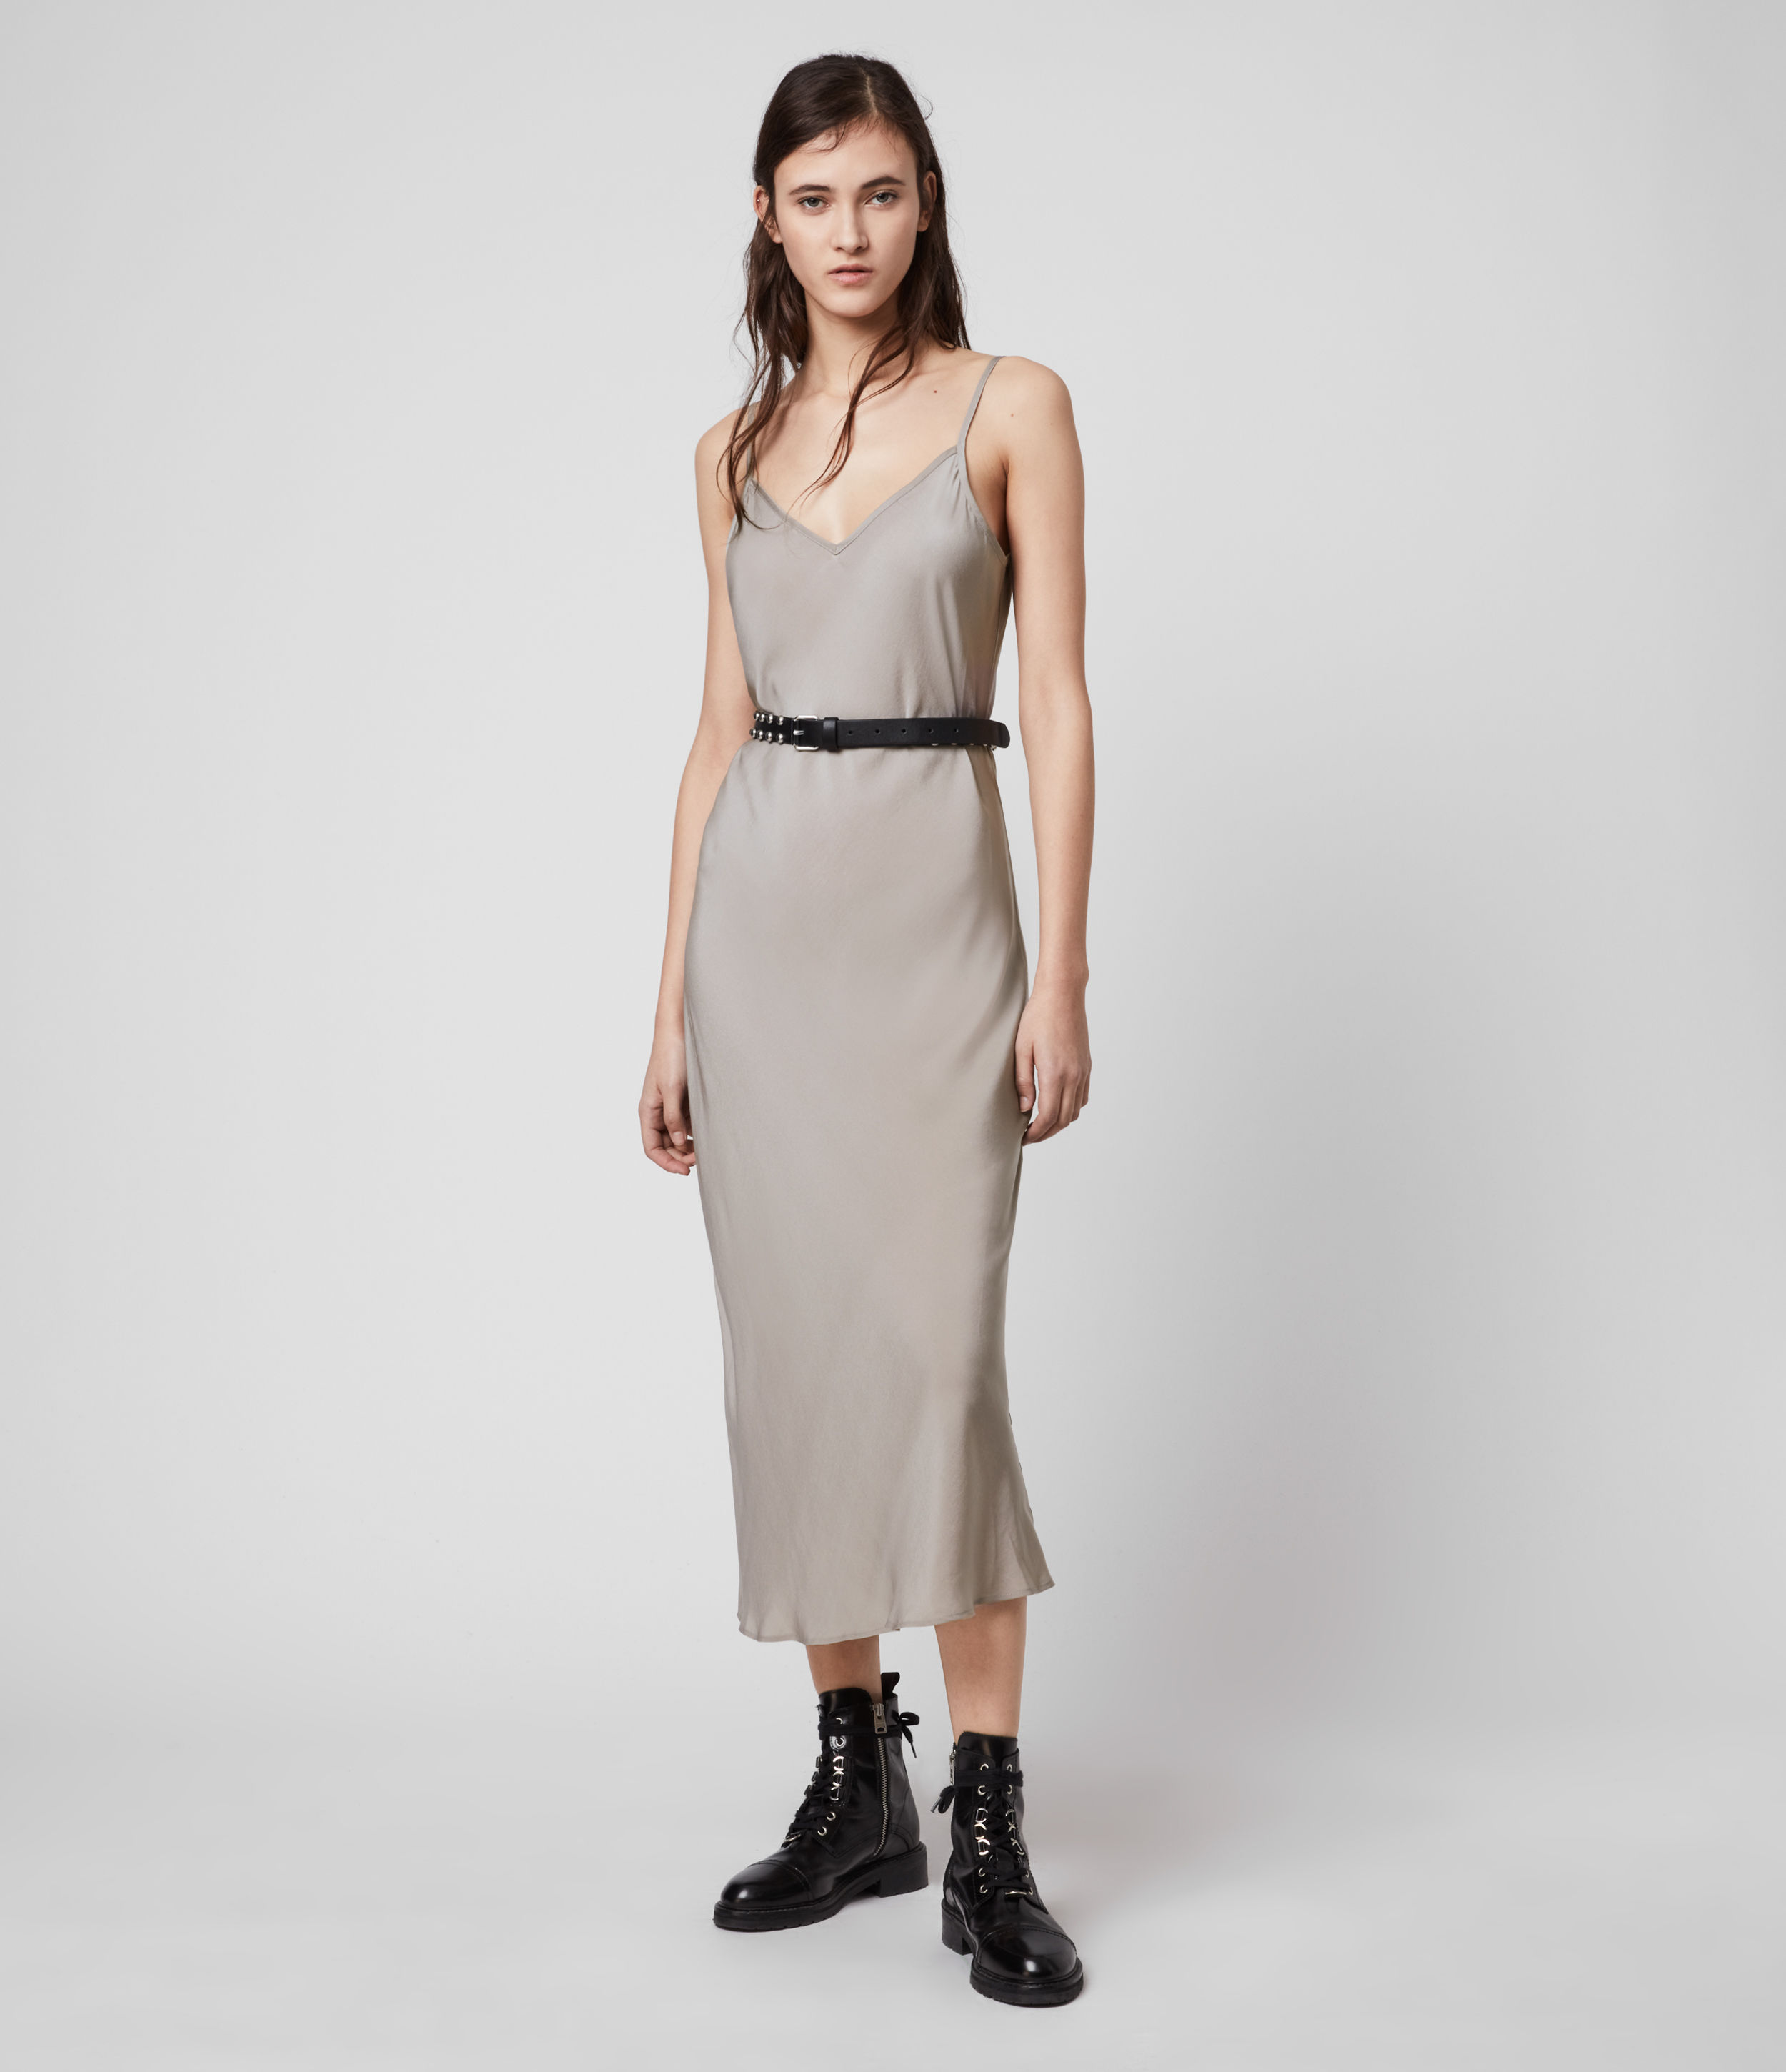 AllSaints Women's Regular Fit Tierney Slip Dress, Grey, Size: M